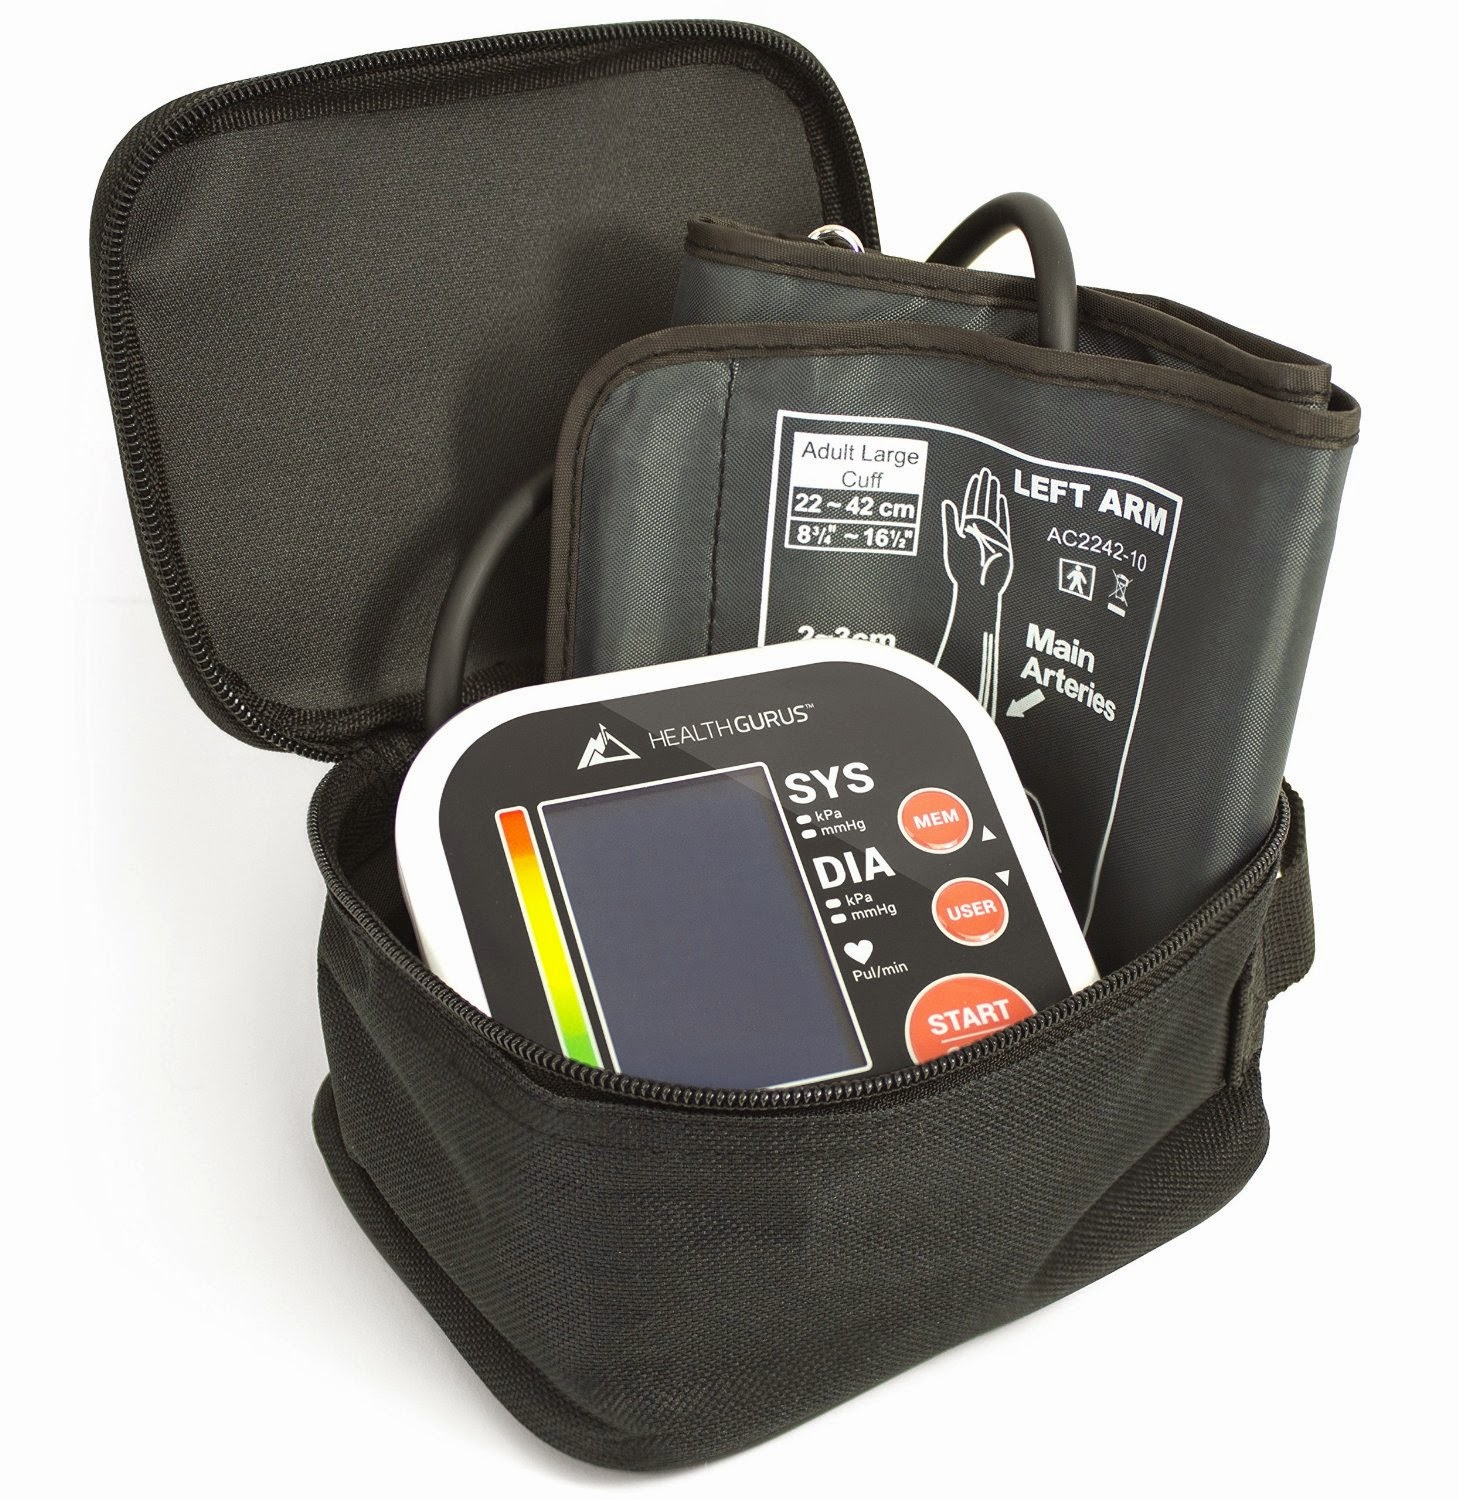 Health Gurus Upper Arm Blood Pressure Monitor